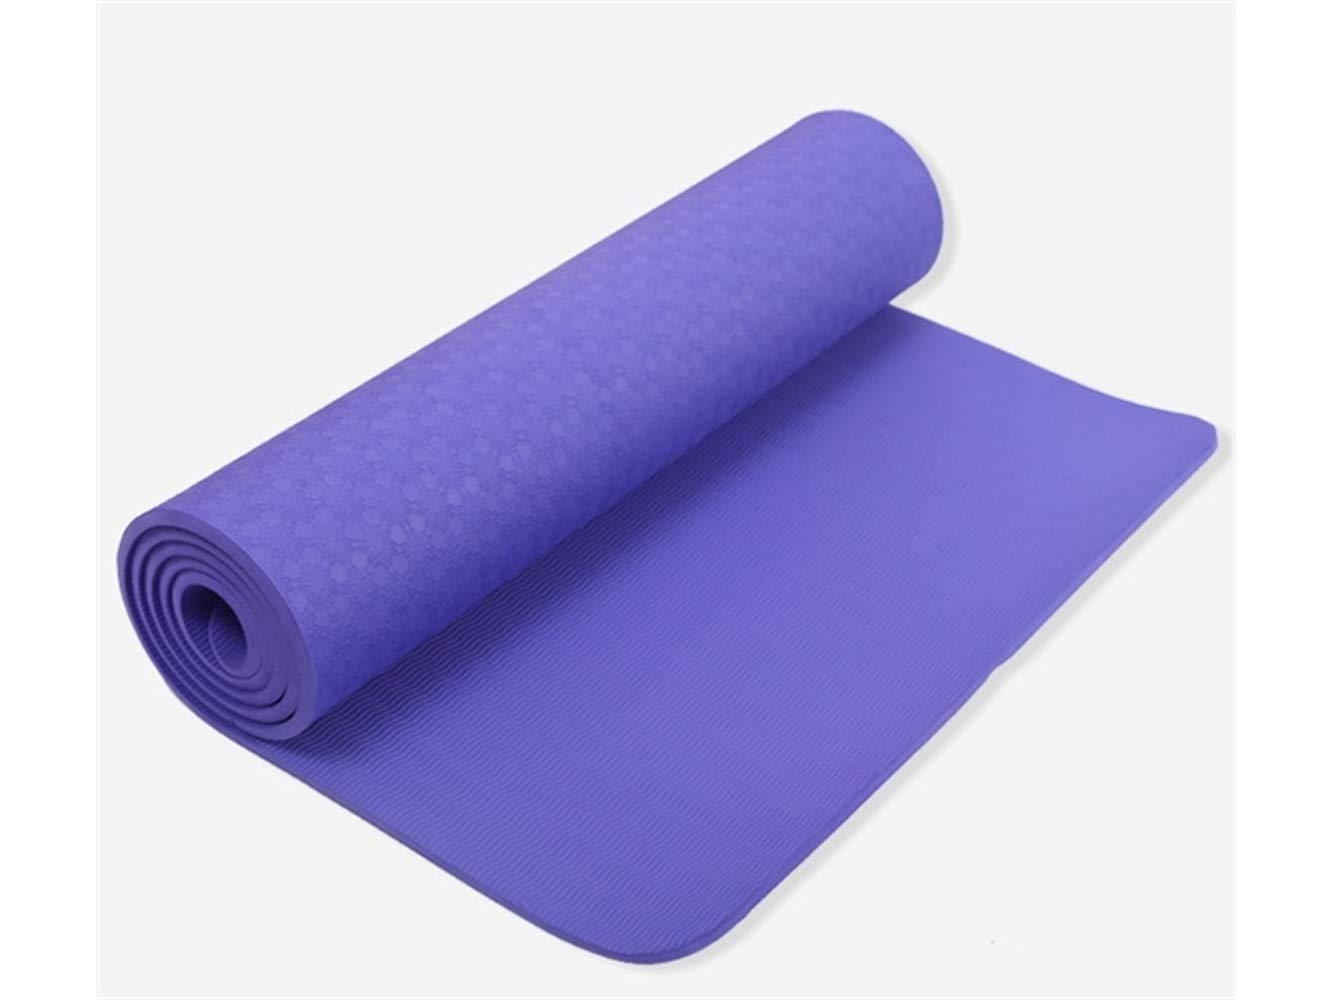 Amazon.com : Andosange Fitness Non-Slip Yoga Mat Pilates Mat ...